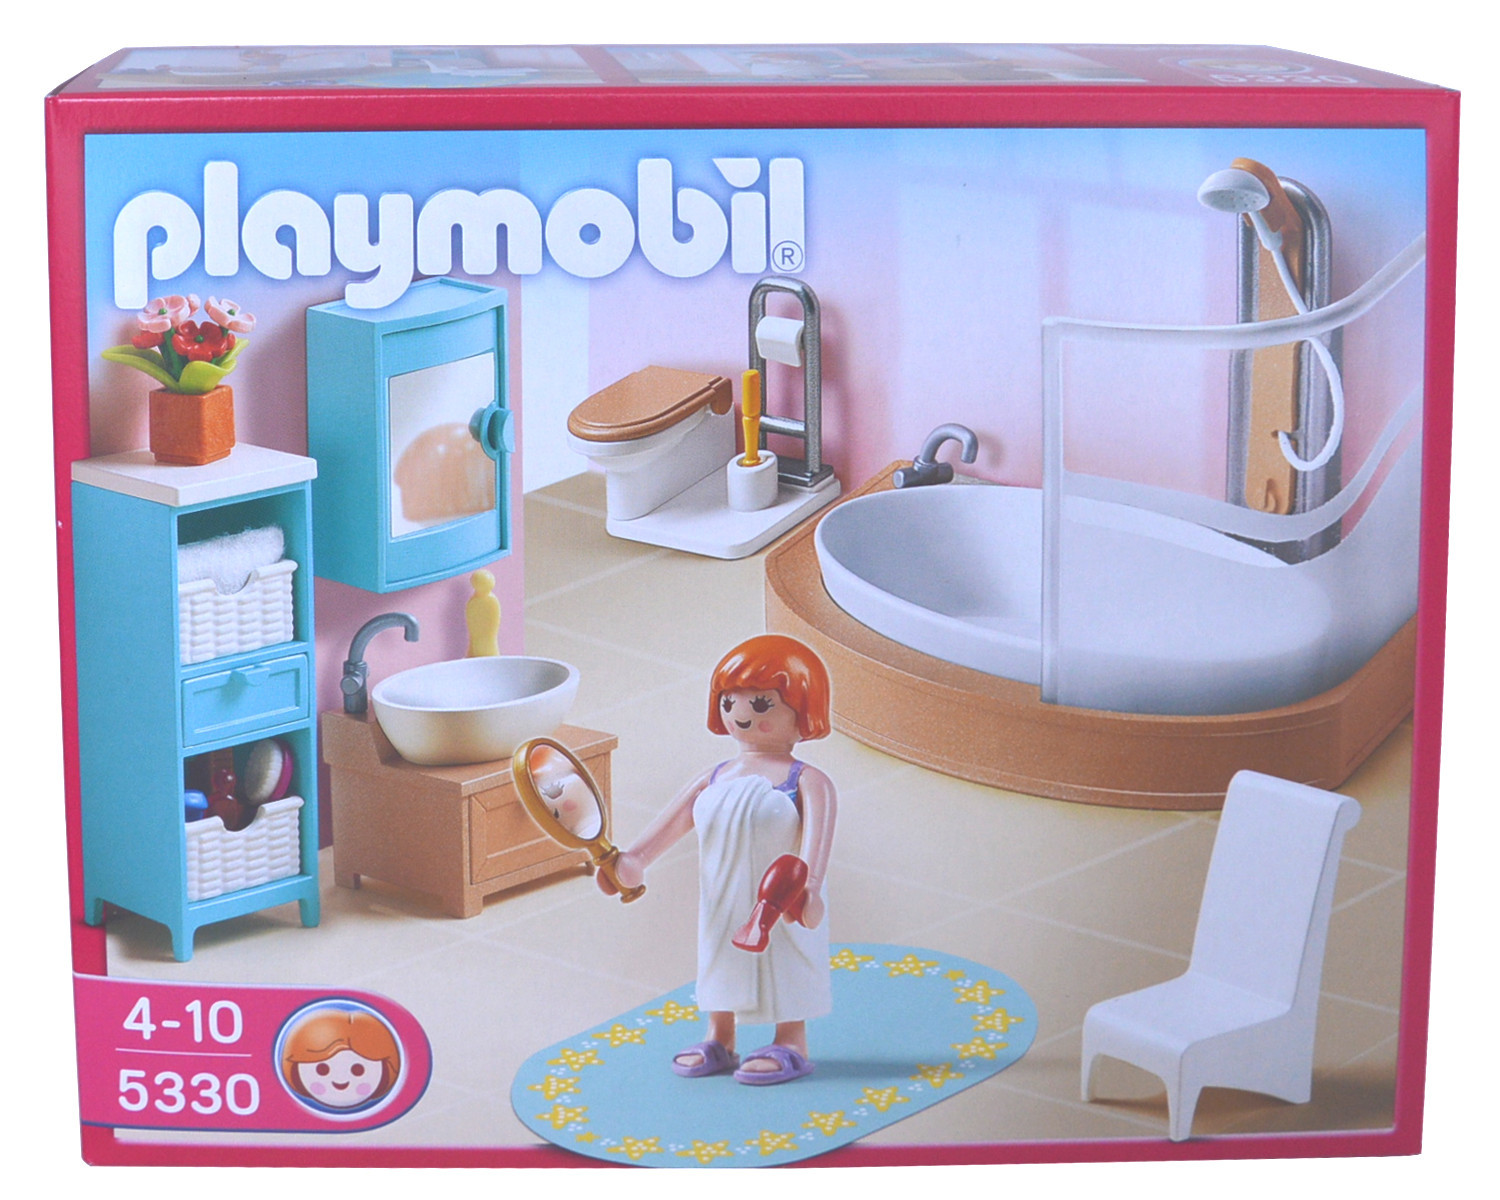 playmobil badezimmer | bnbnews.co, Badezimmer